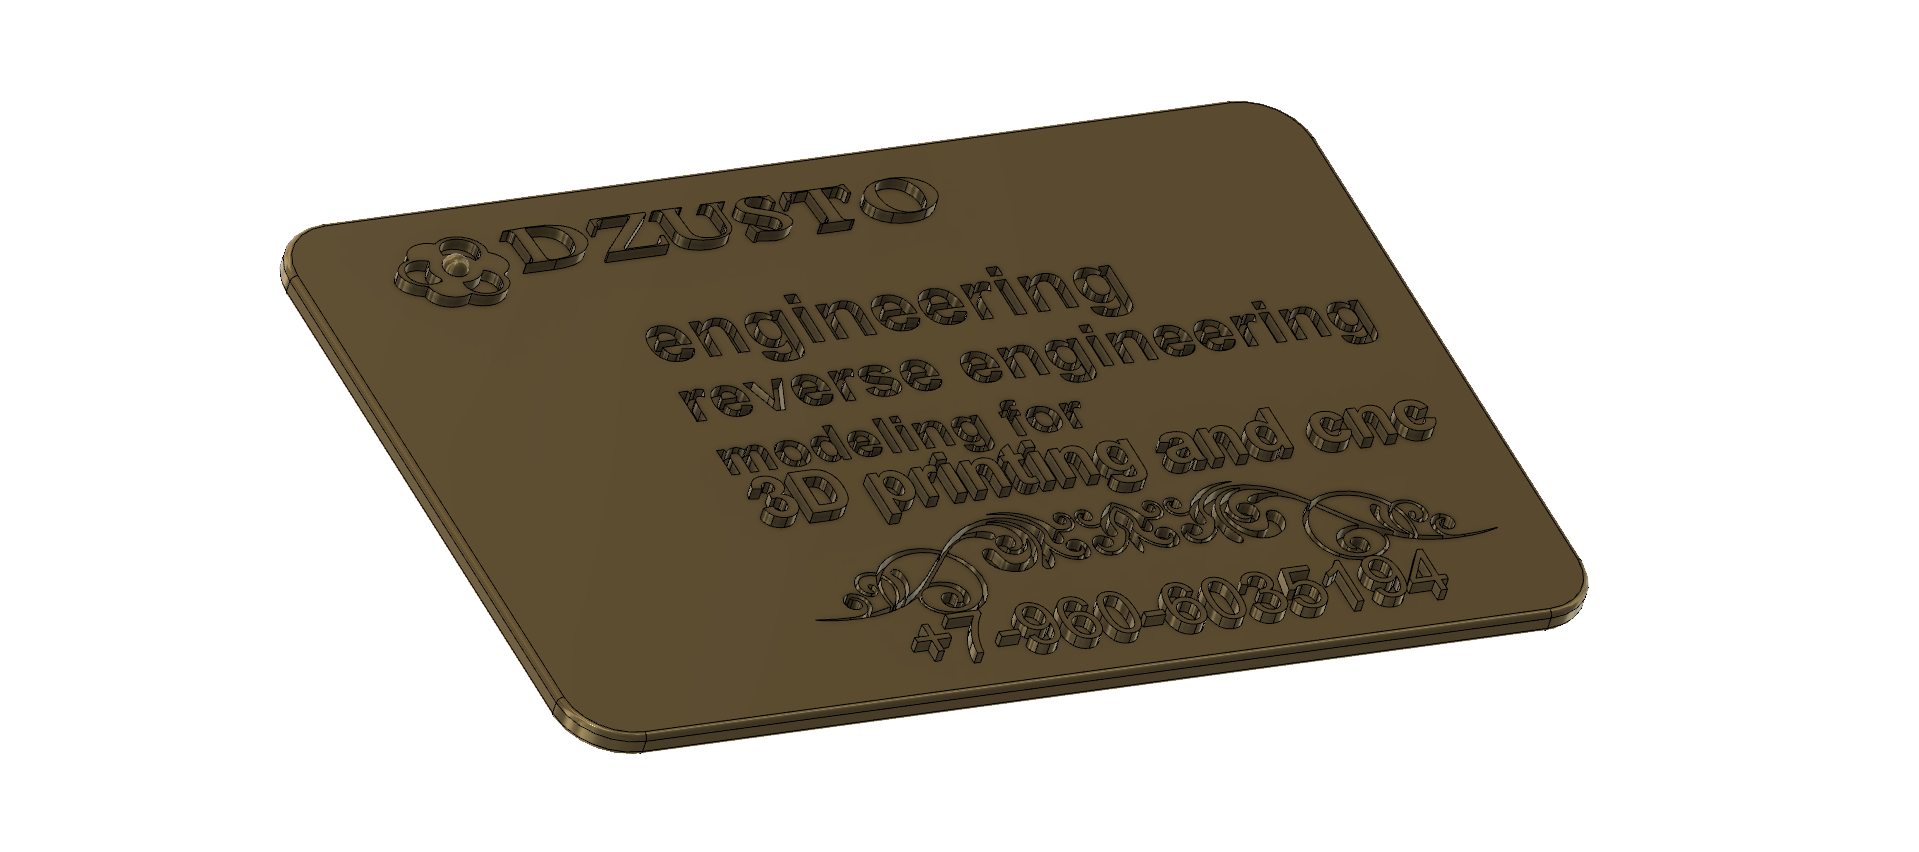 business card 01 v5-07.png Download free STL file Modeling product engineering and reverse-engineering  for CNC machines and 3D printing • 3D printable object, Dzusto